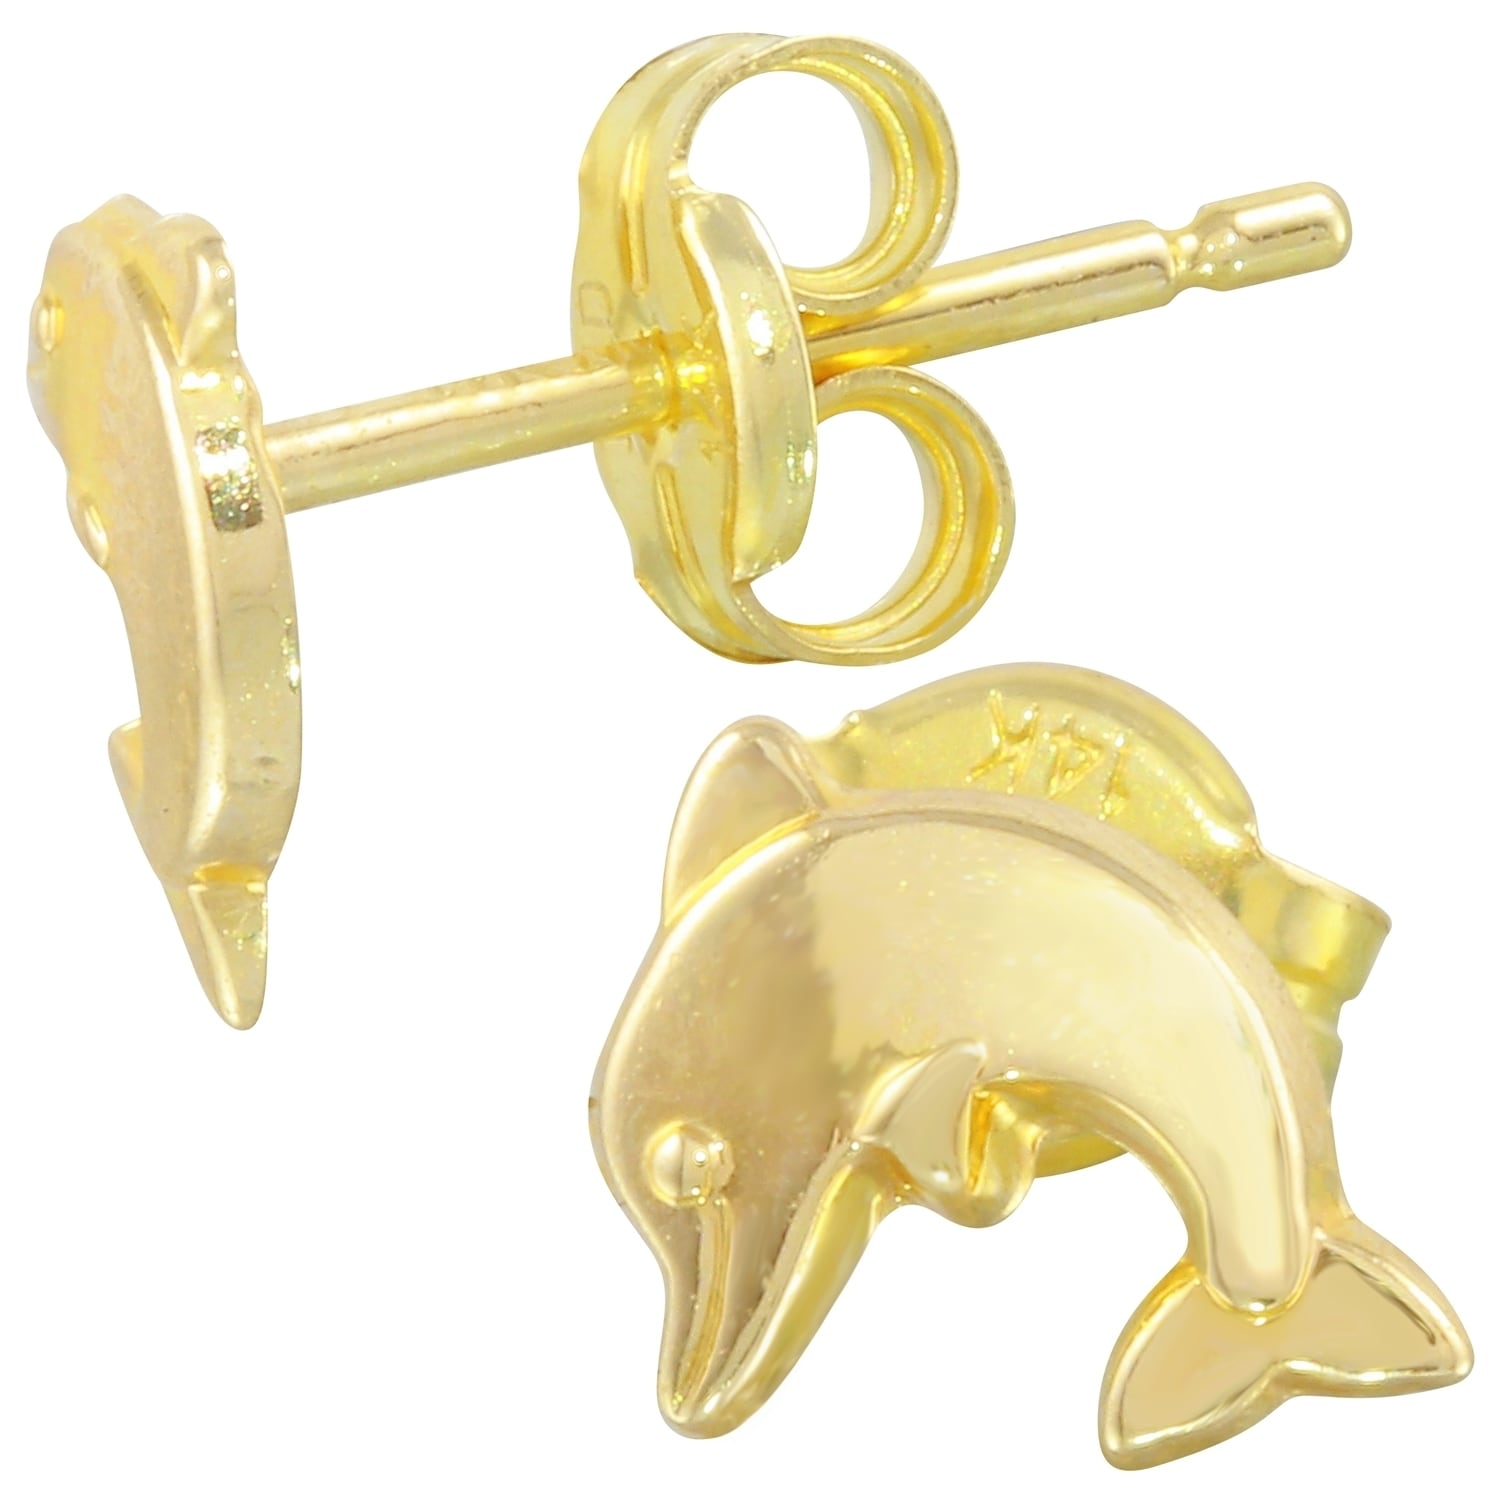 14k Yellow Gold Dolphin Earrings Free Shipping Today 16838781